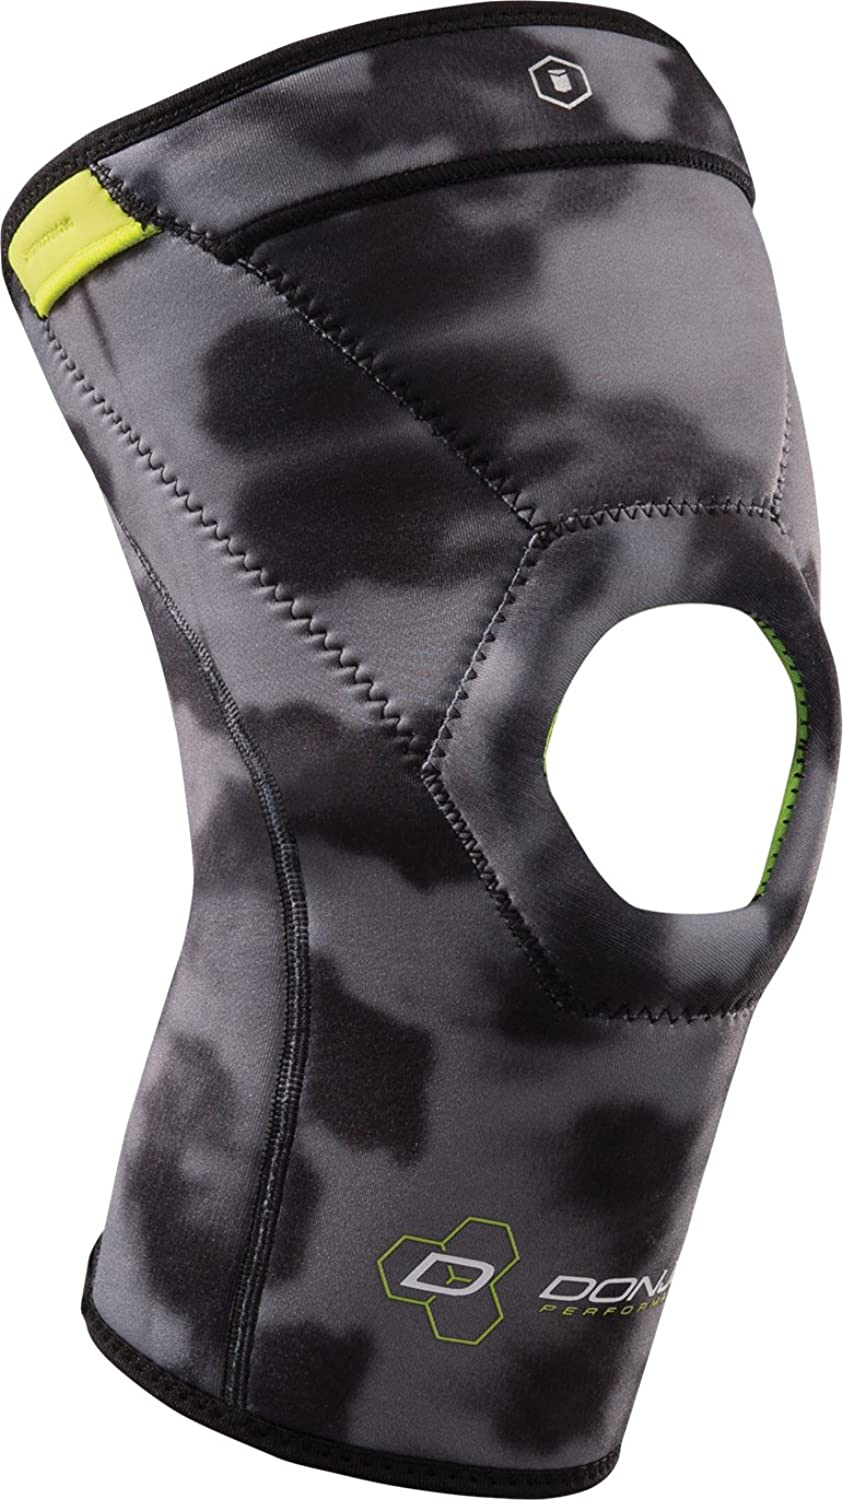 DonJoy Performance ANAFORM Knee Support Compression Sleeve  4 mm Open Patella, Camo, XSmall